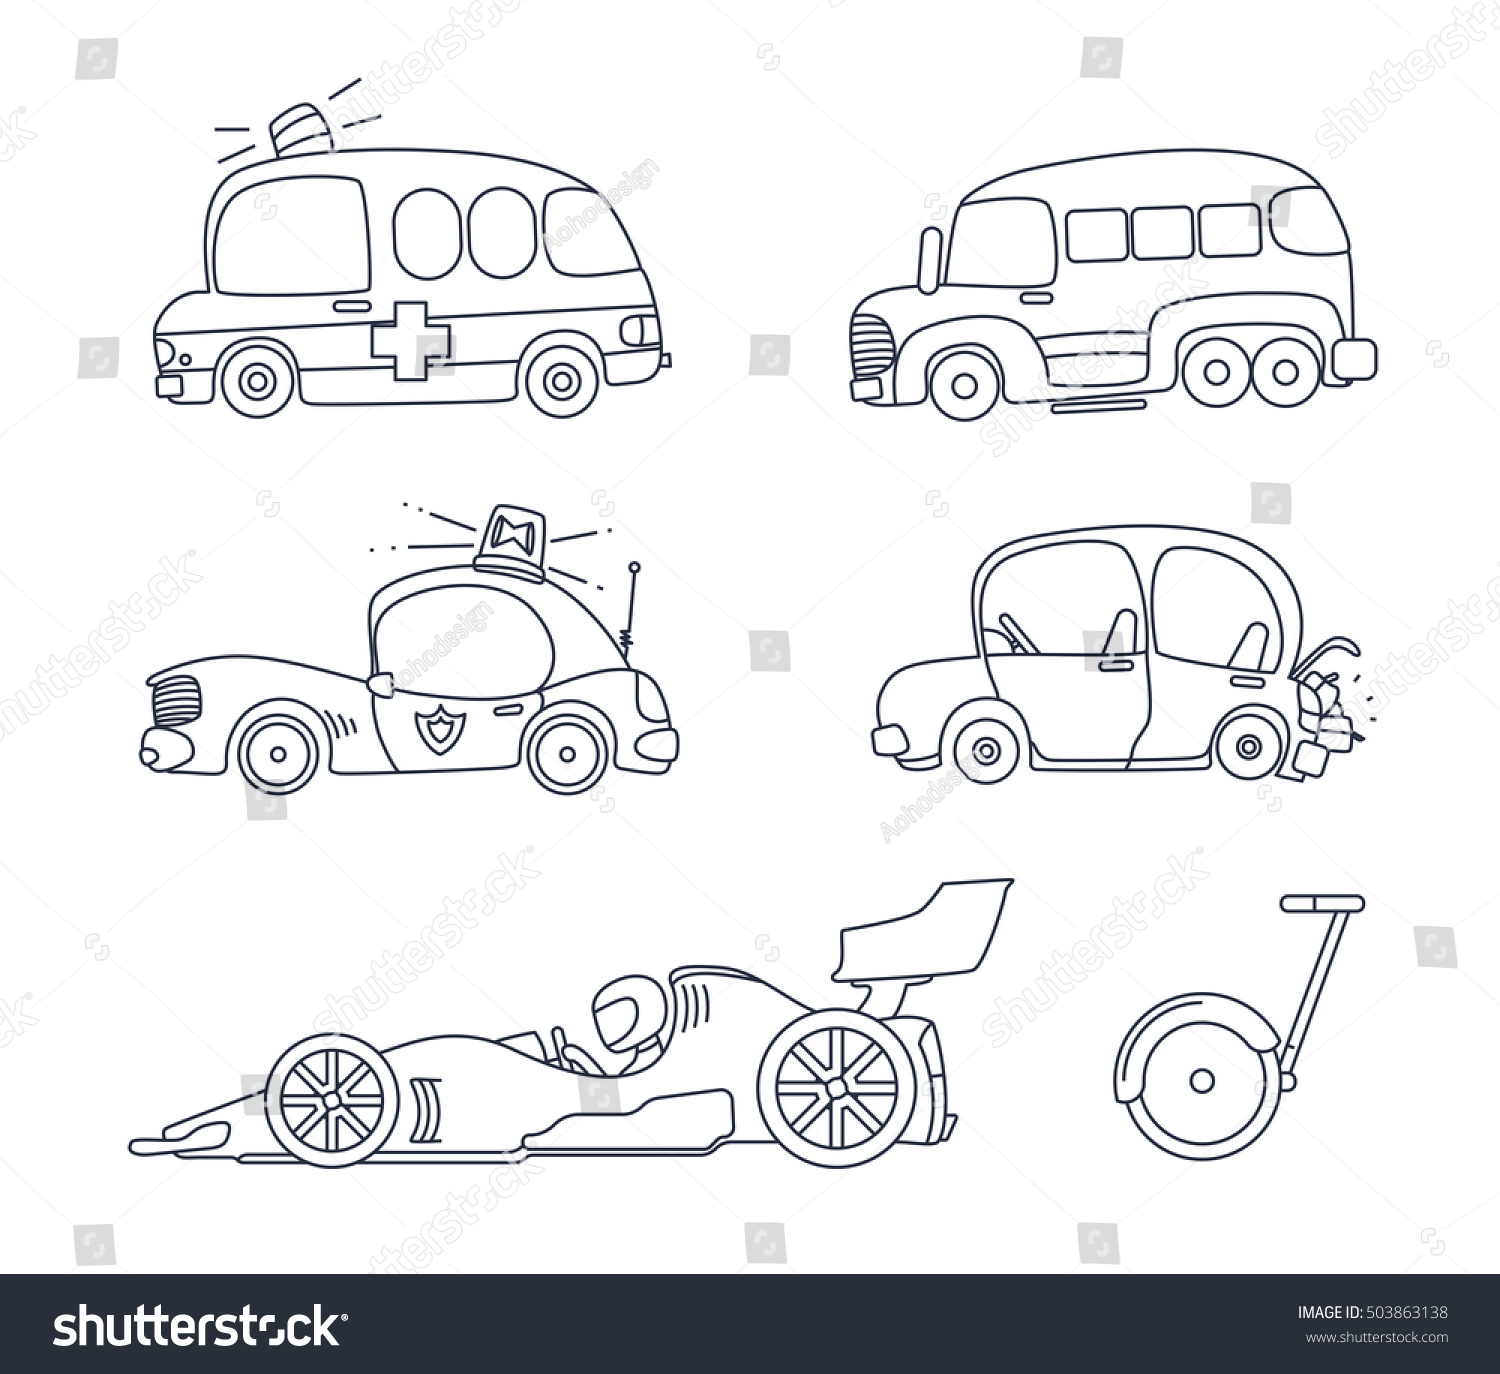 Set Cute Car Coloring Page Illustration Stock Vector